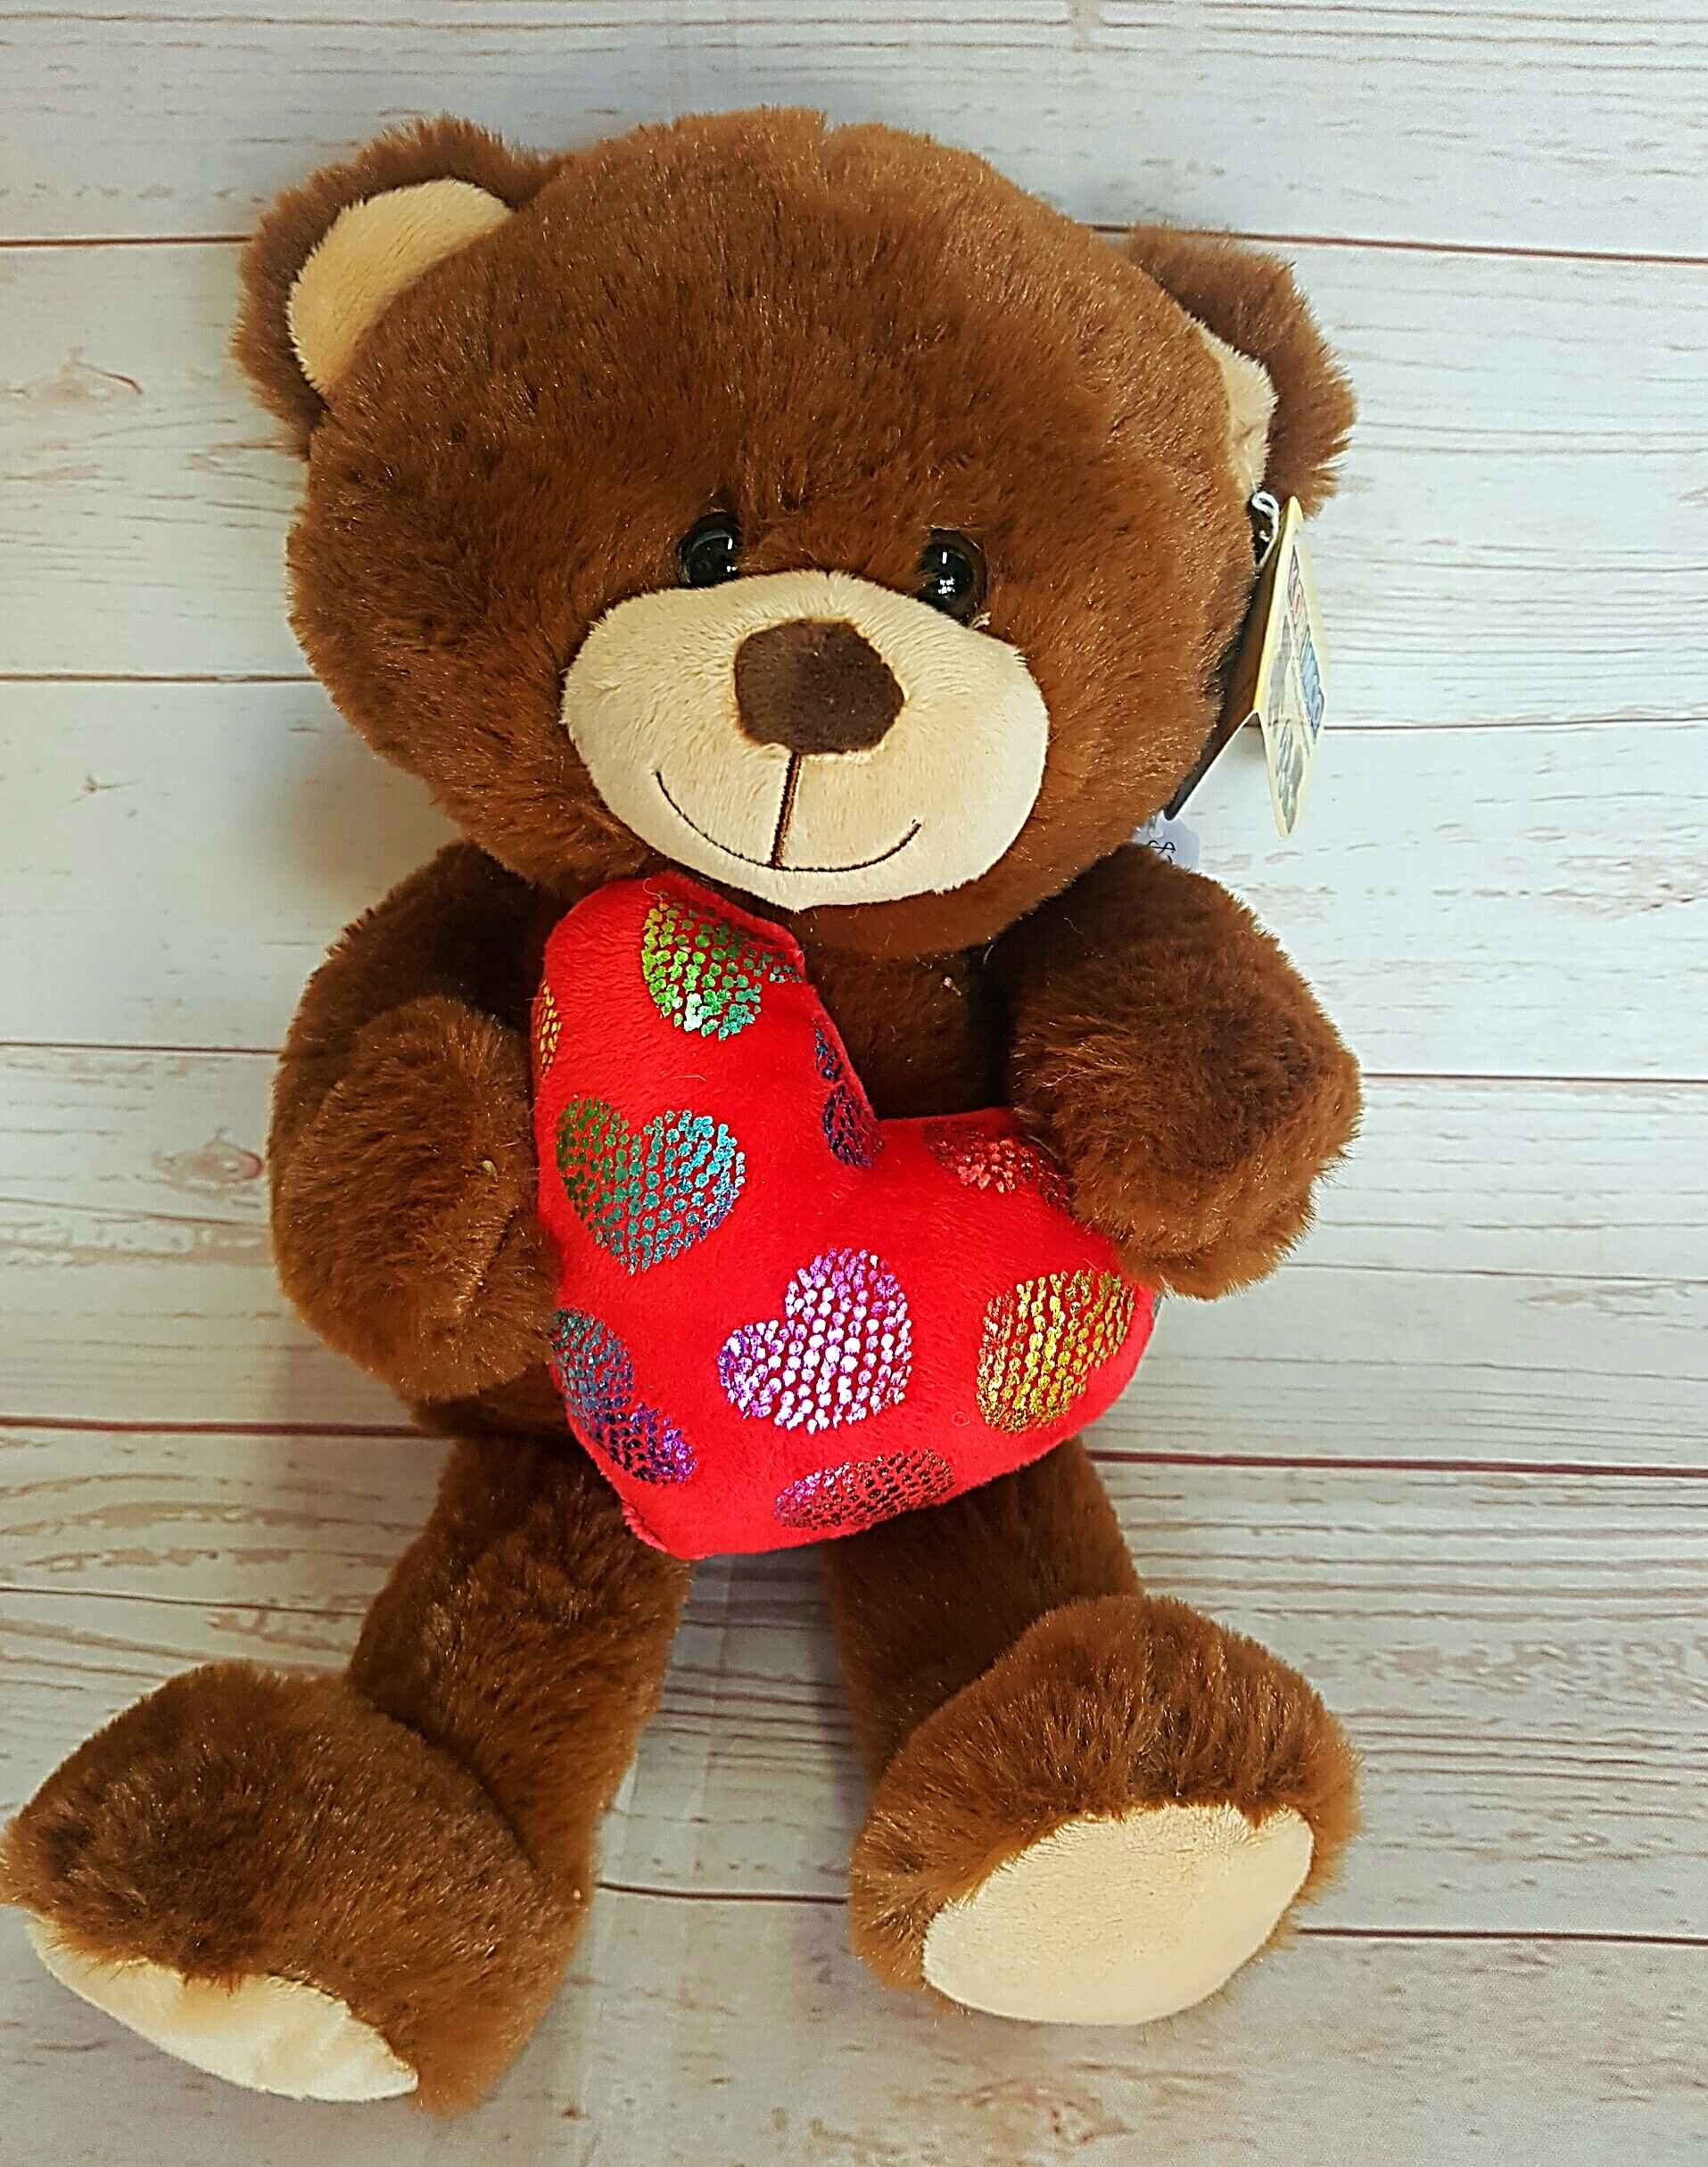 Amore, a soft, cuddly teddy bear holding his heart.  Amore sit 25cm, and will bedazzle his new home.